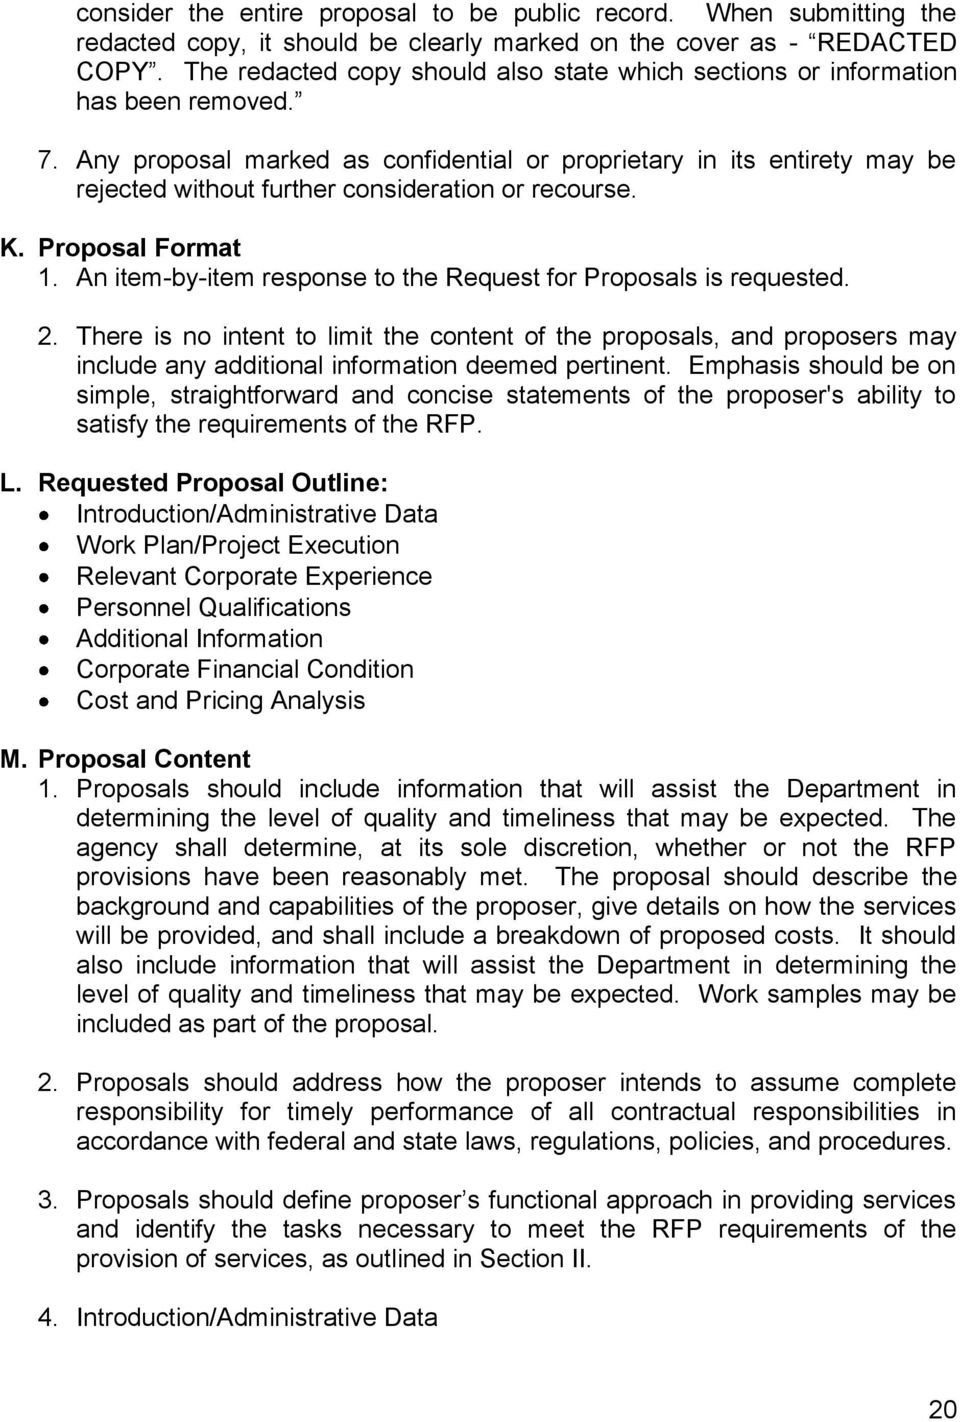 Any proposal marked as confidential or proprietary in its entirety may be rejected without further consideration or recourse. K. Proposal Format 1.